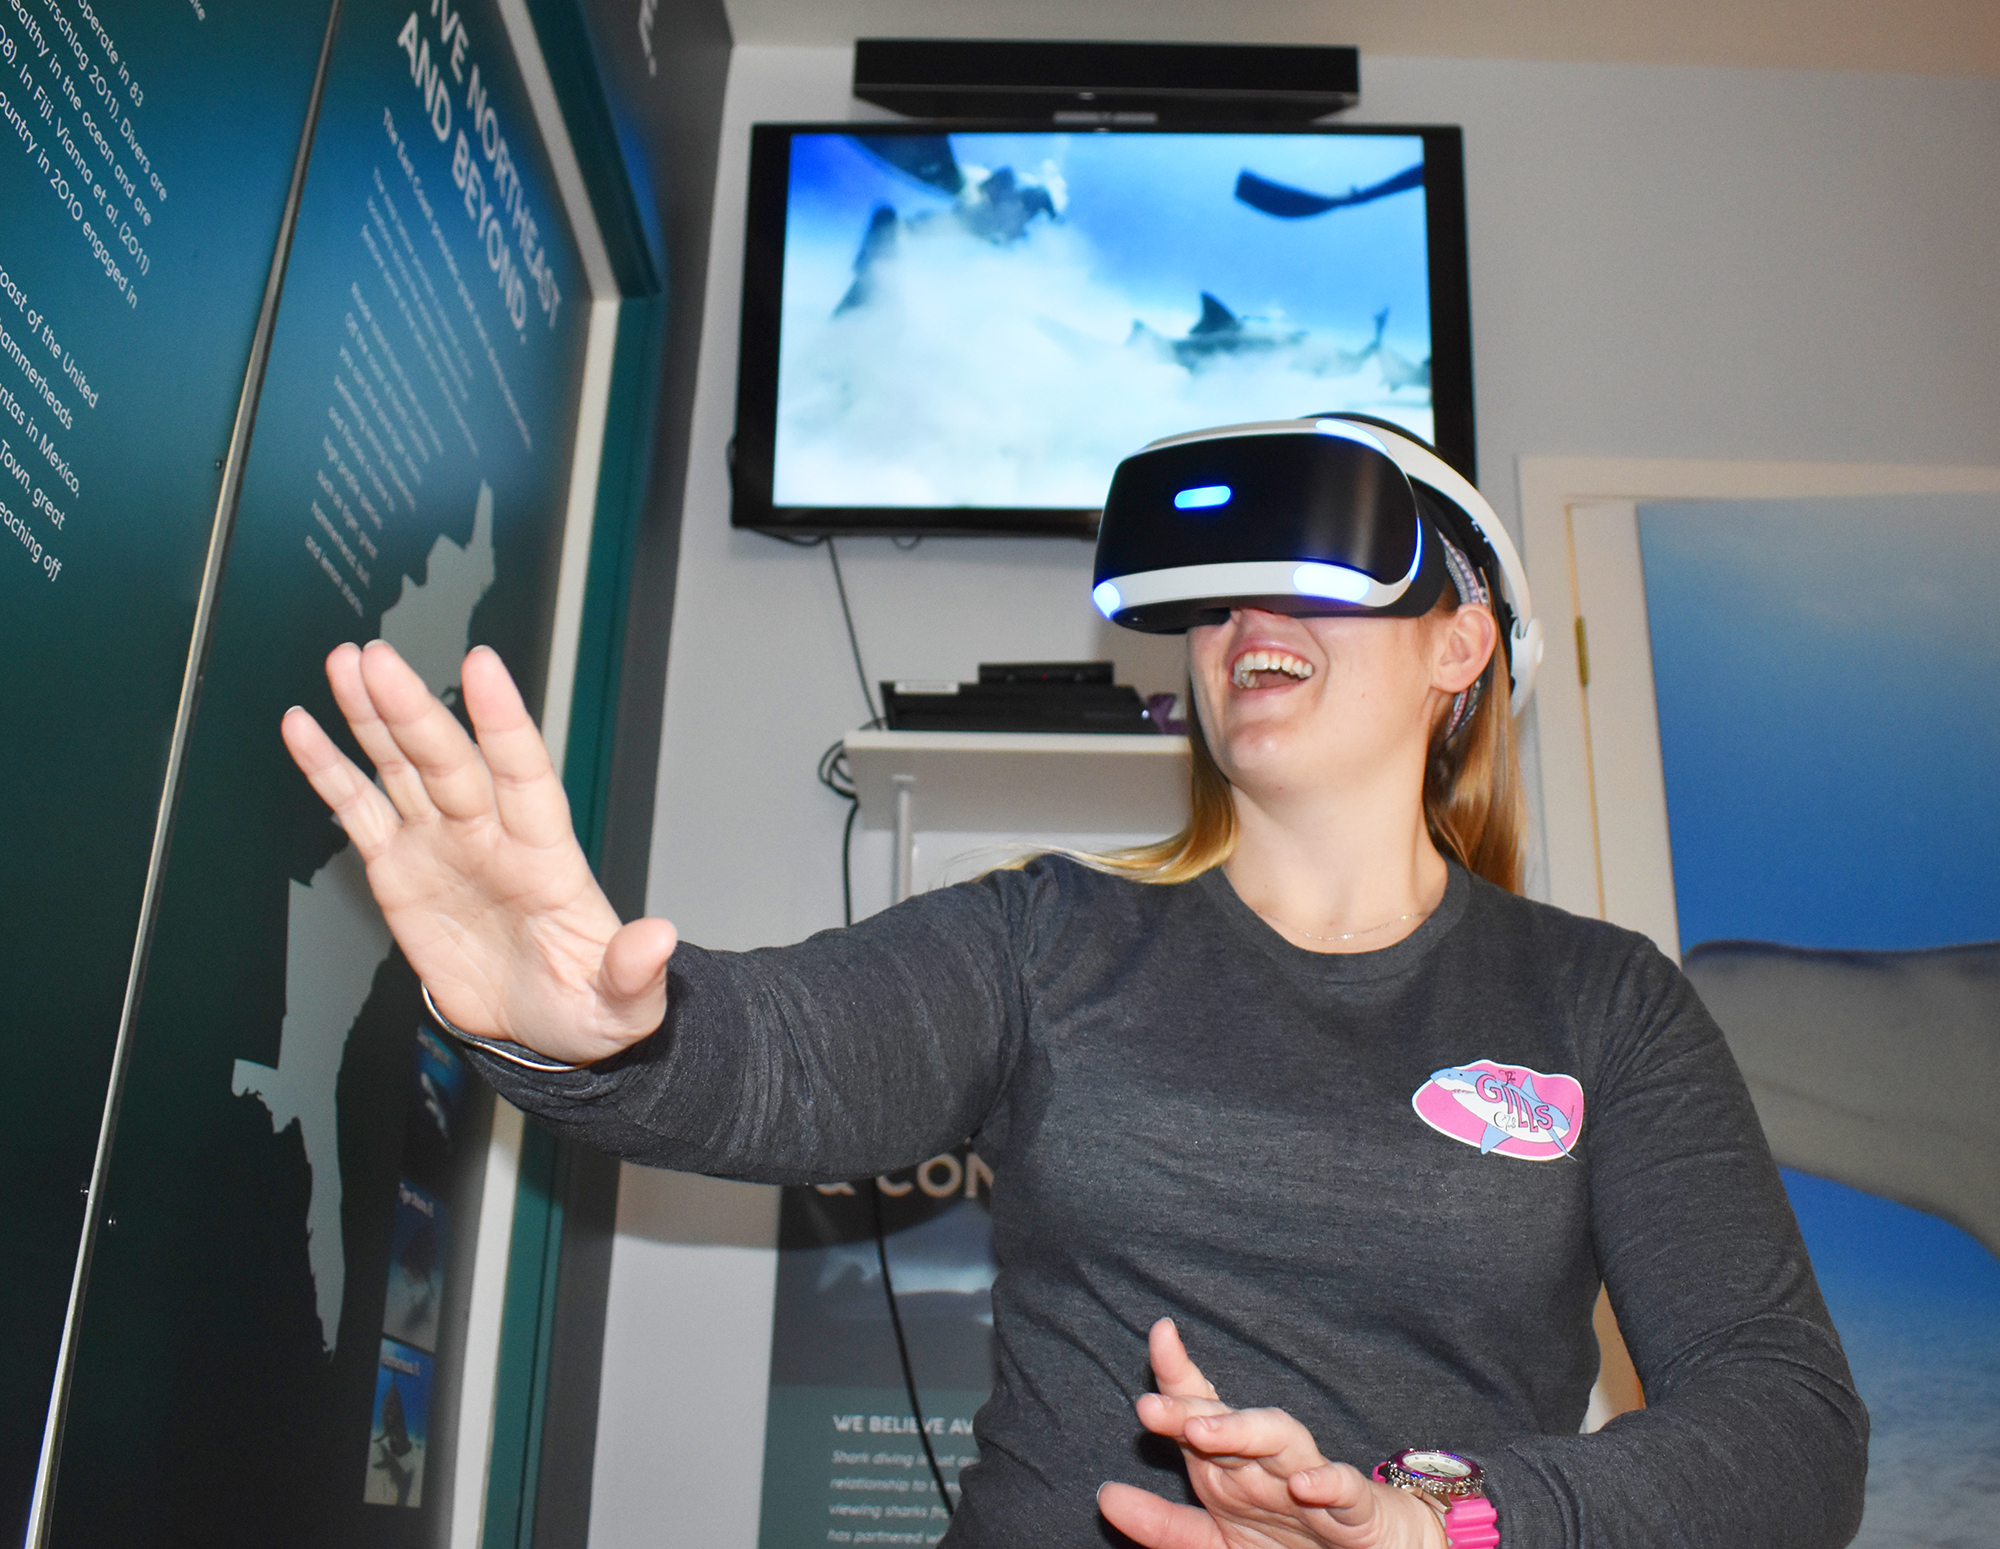 The Center's Virtual Reality experience provides guests of all ages with an up-close encounter with several shark species in their natural habitat.